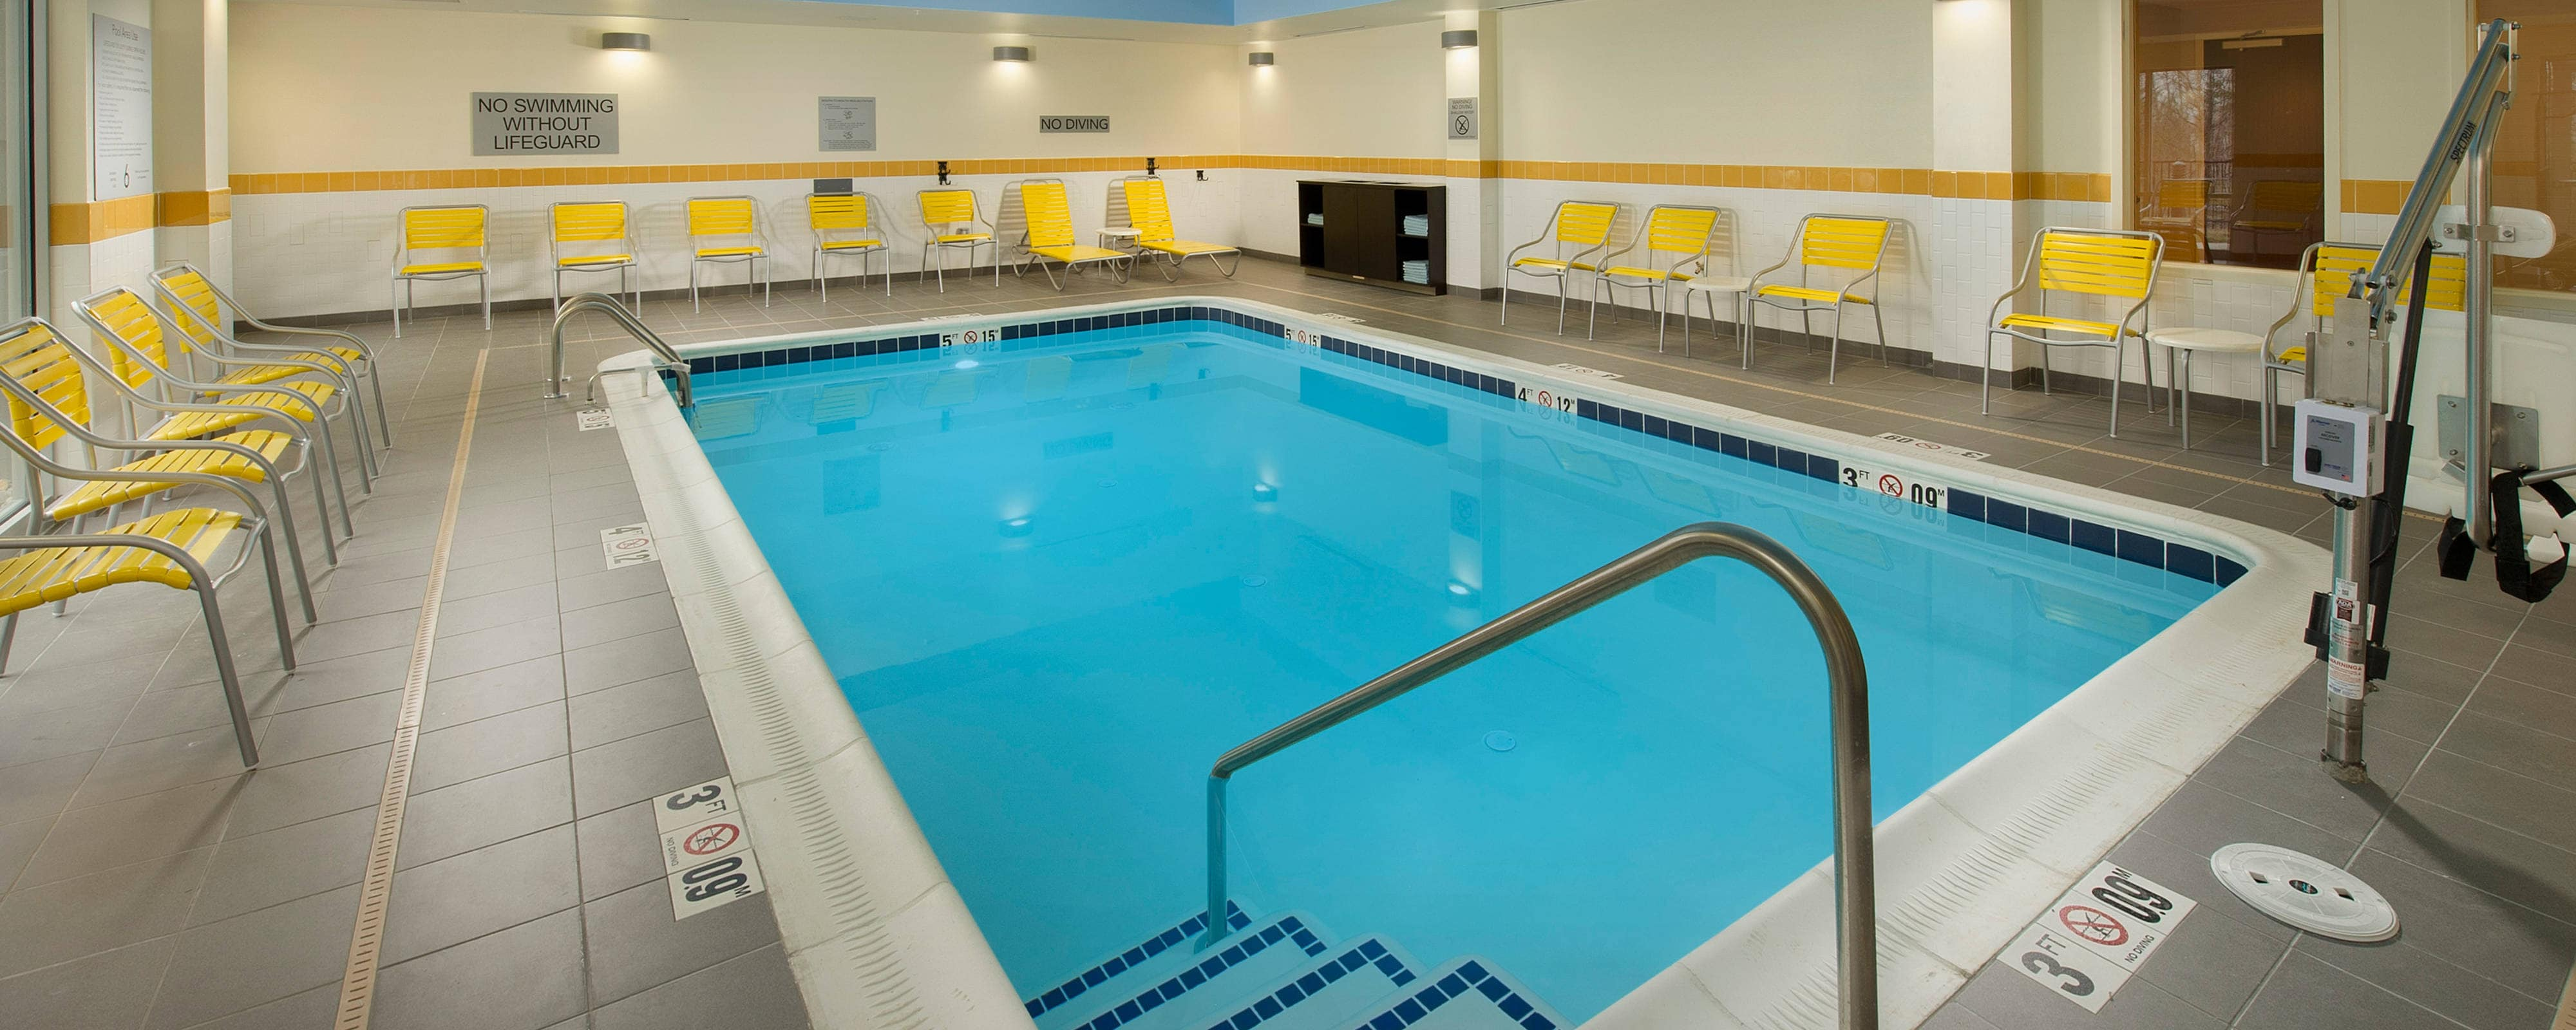 Hanover MD hotel indoor pool